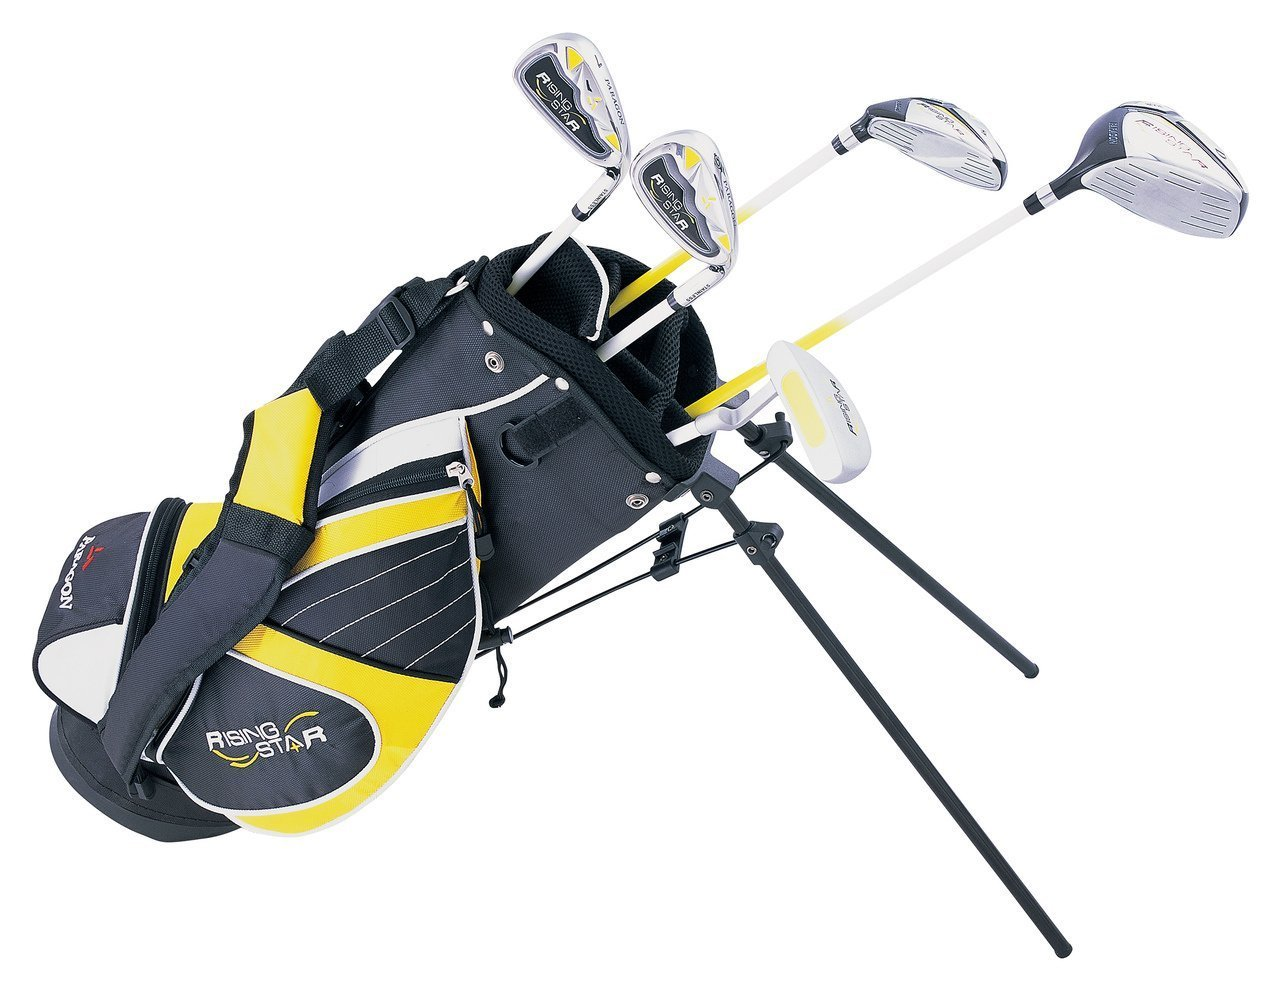 Paragon Rising Star Kids Golf Clubs Set / Ages 5-7 Yellow With Hat / Left-Hand by Paragon (Image #7)